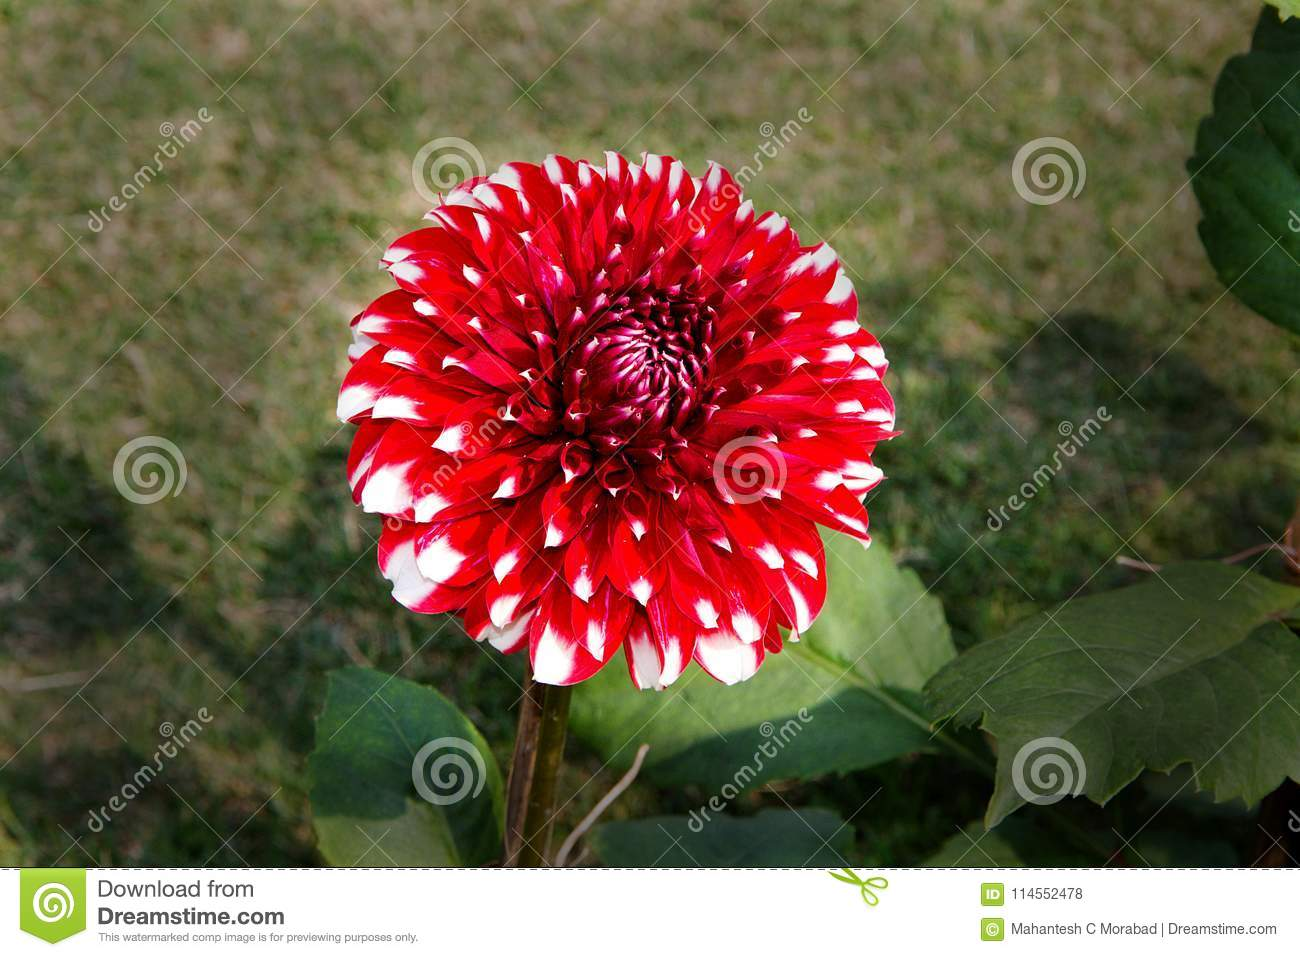 Red flower petals with white tips stock photo image of flower download red flower petals with white tips stock photo image of flower flora mightylinksfo